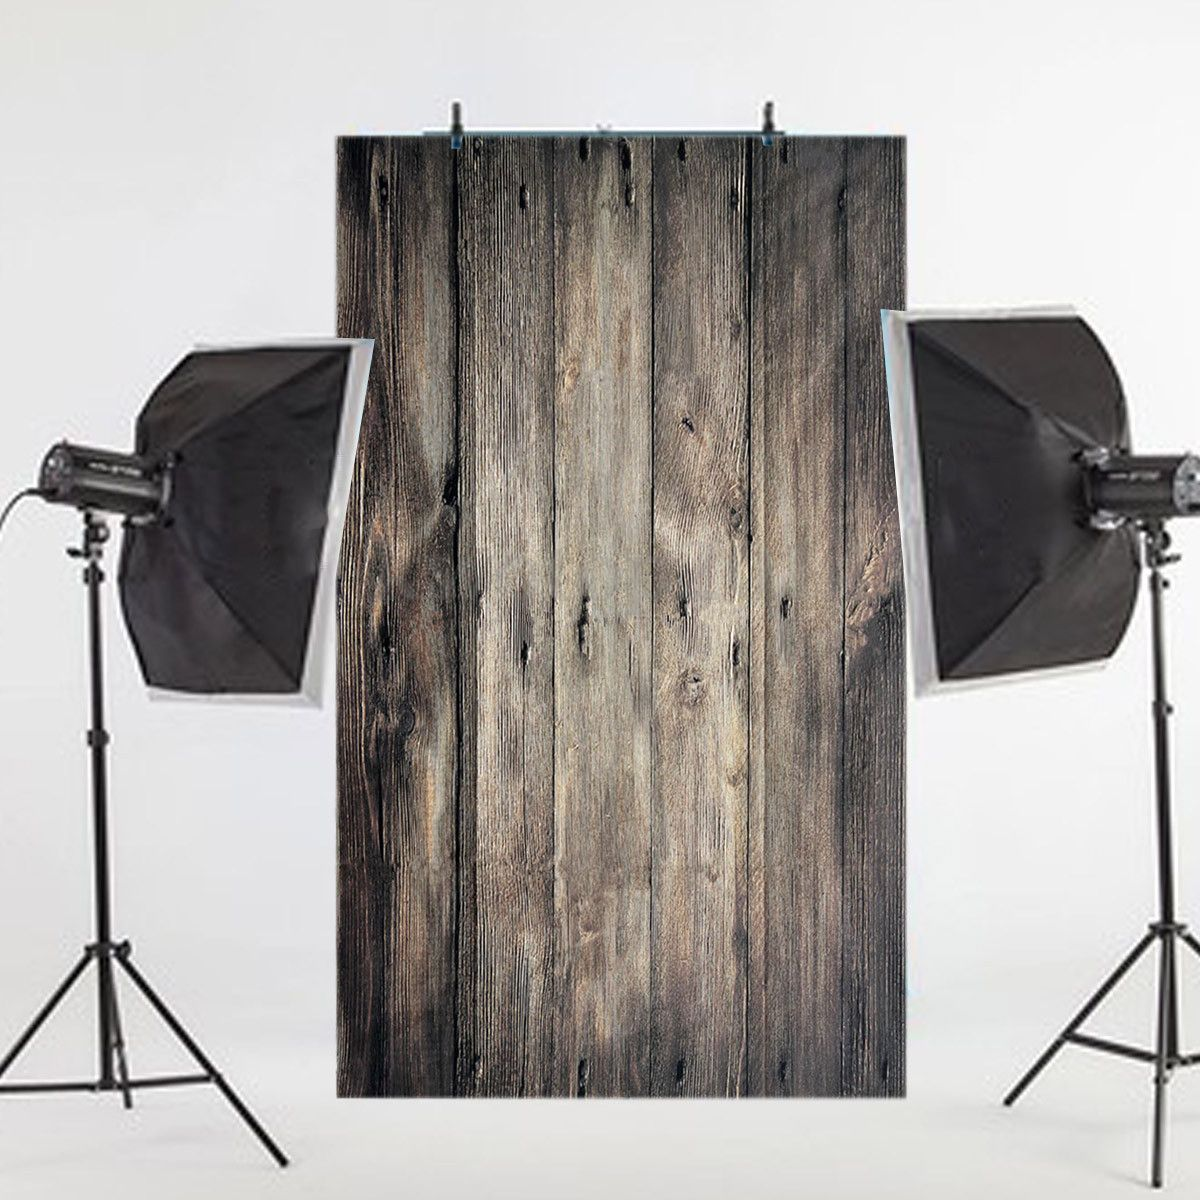 New 3x5FT Vintage Photography Backdrops Wood Vintage Photography Backdrop Backgrounds Studio Wood Background Fotografia лонгслив printio мэрилин монро